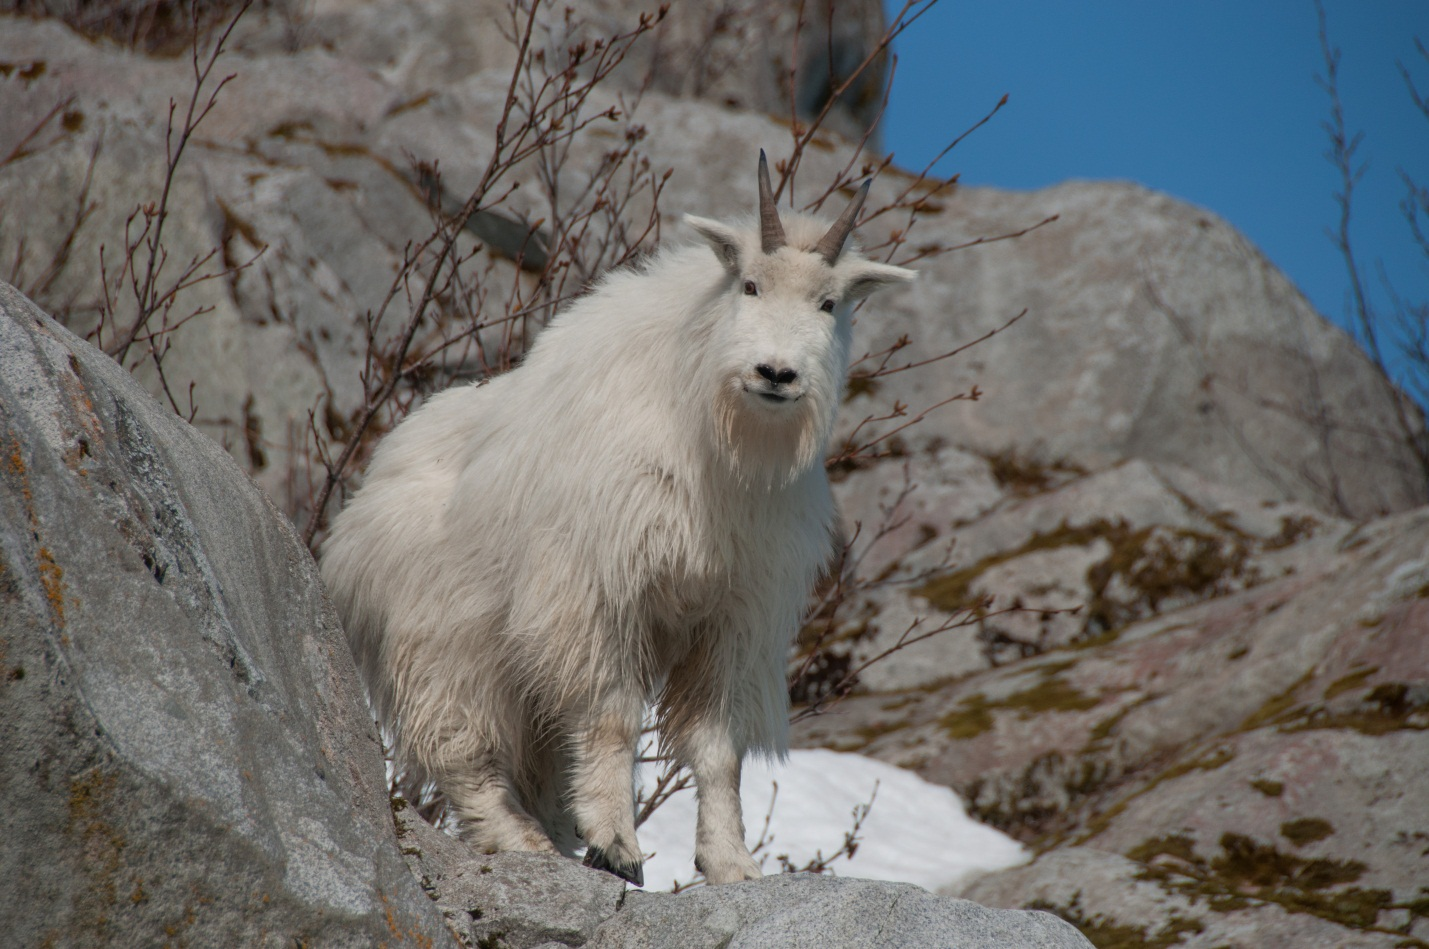 https://i2.wp.com/www.nps.gov/akr/glba/images/Mountain-Goat.jpg